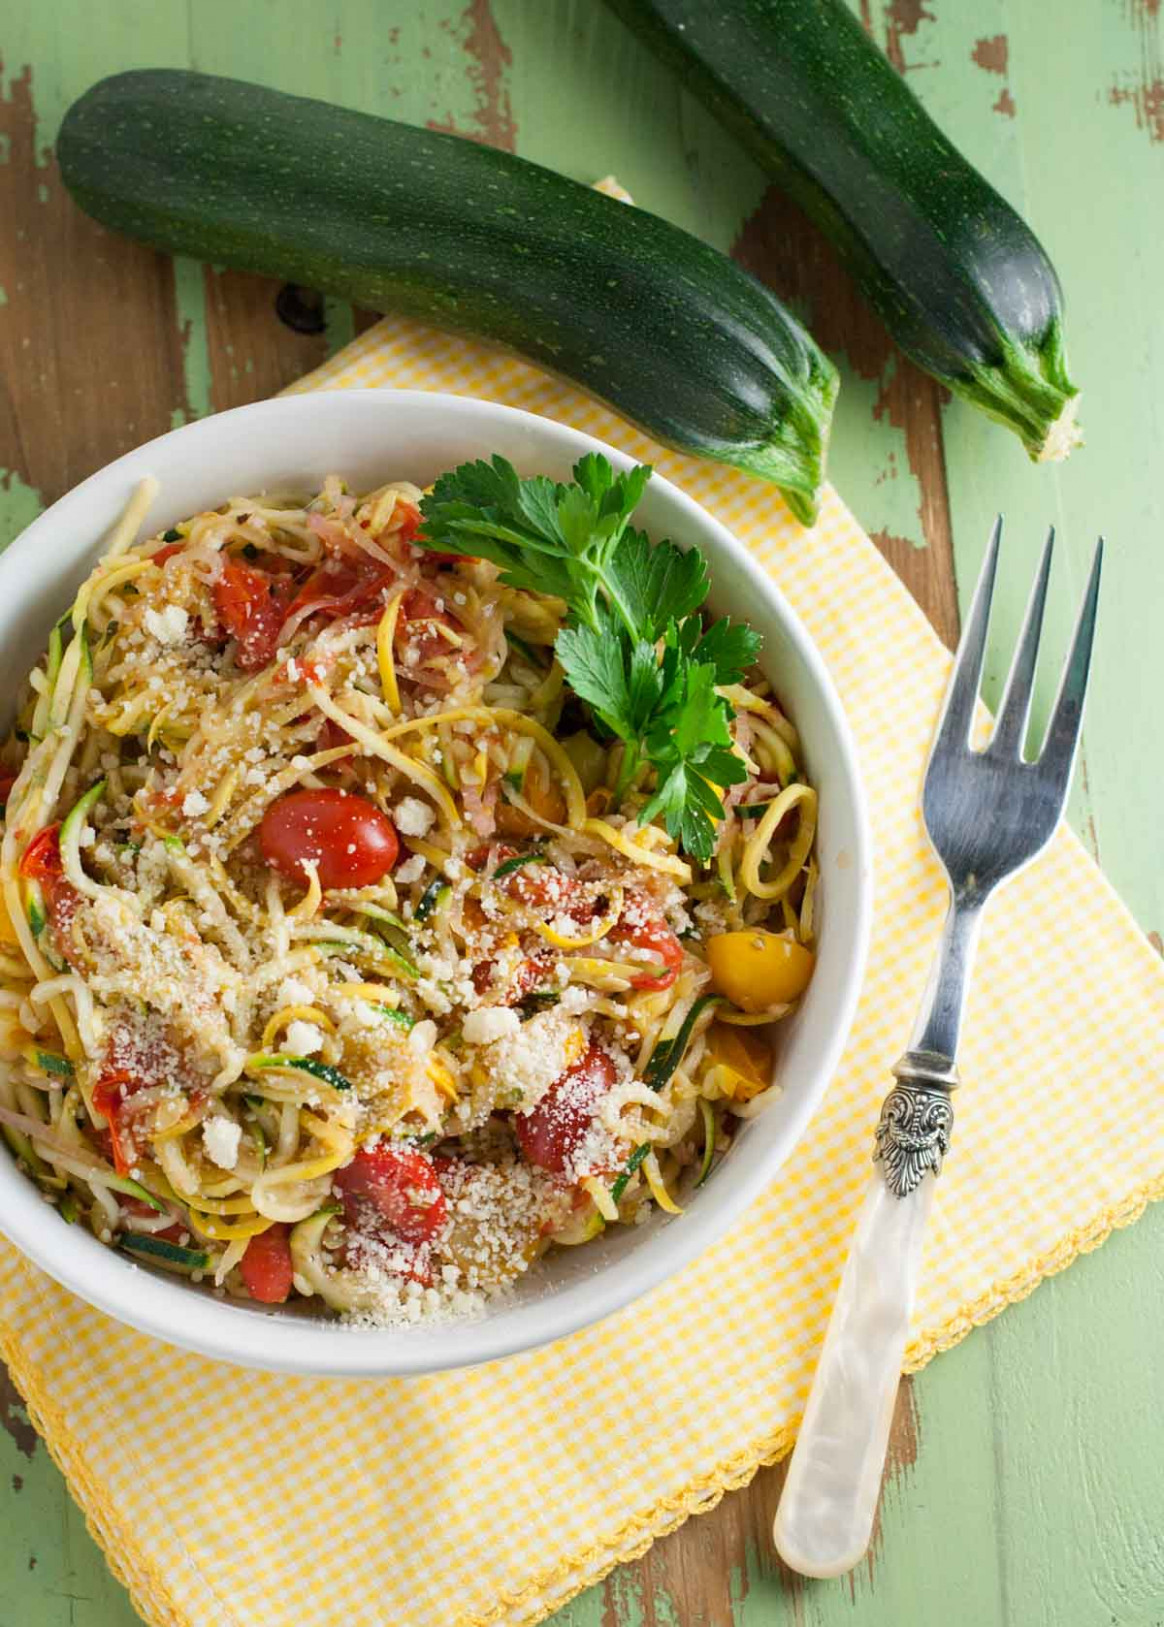 Zucchini Noodles With White Wine Sauce - Healthy Dinner Recipes Zucchini Noodles